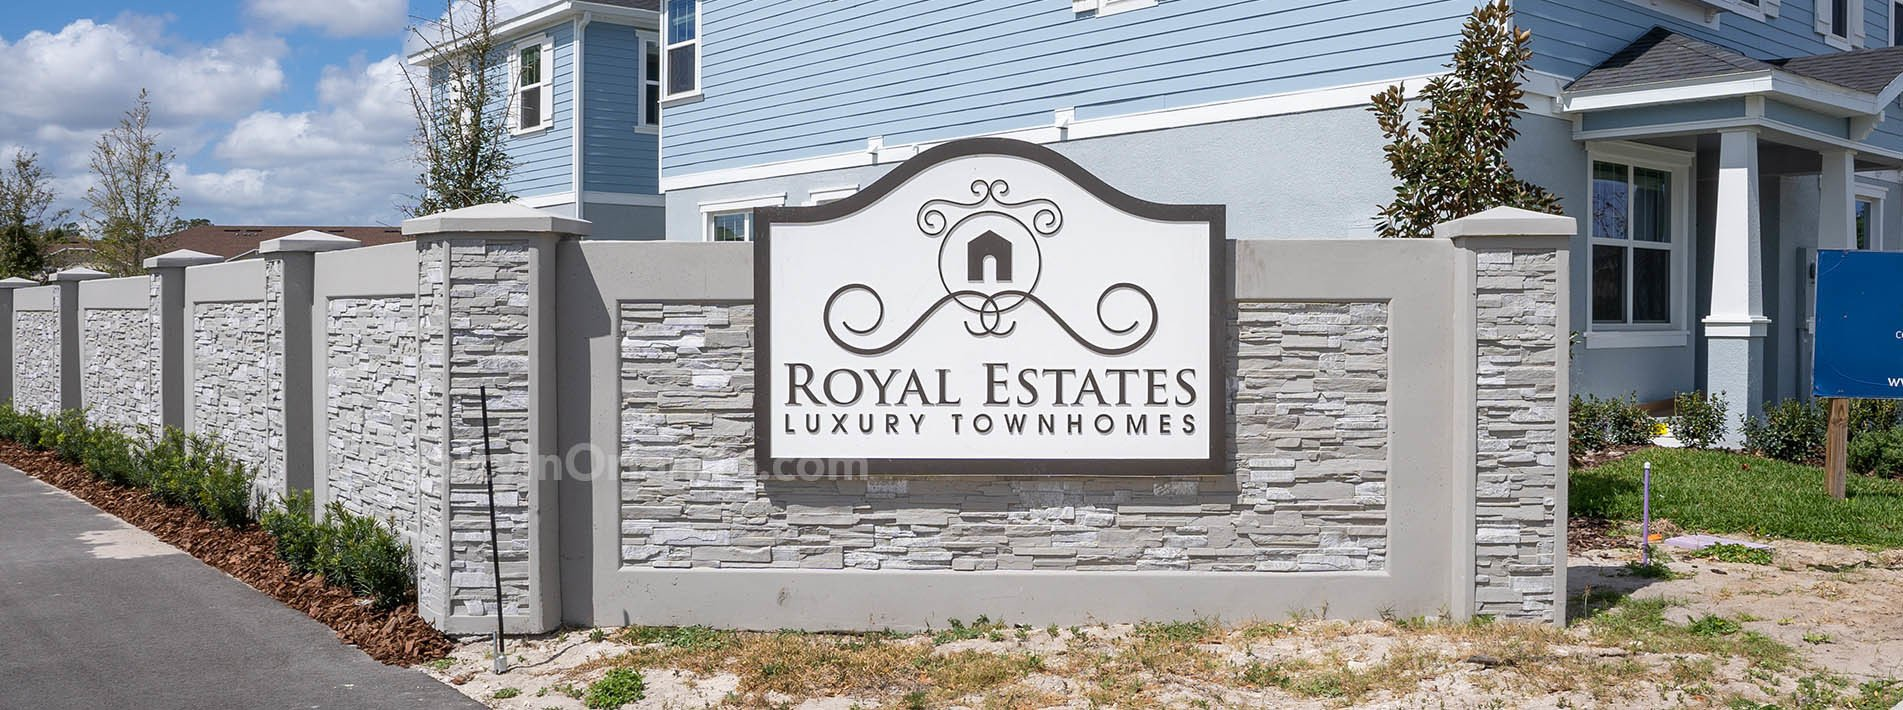 Royal Estates Townhomes Windermere Real Estate